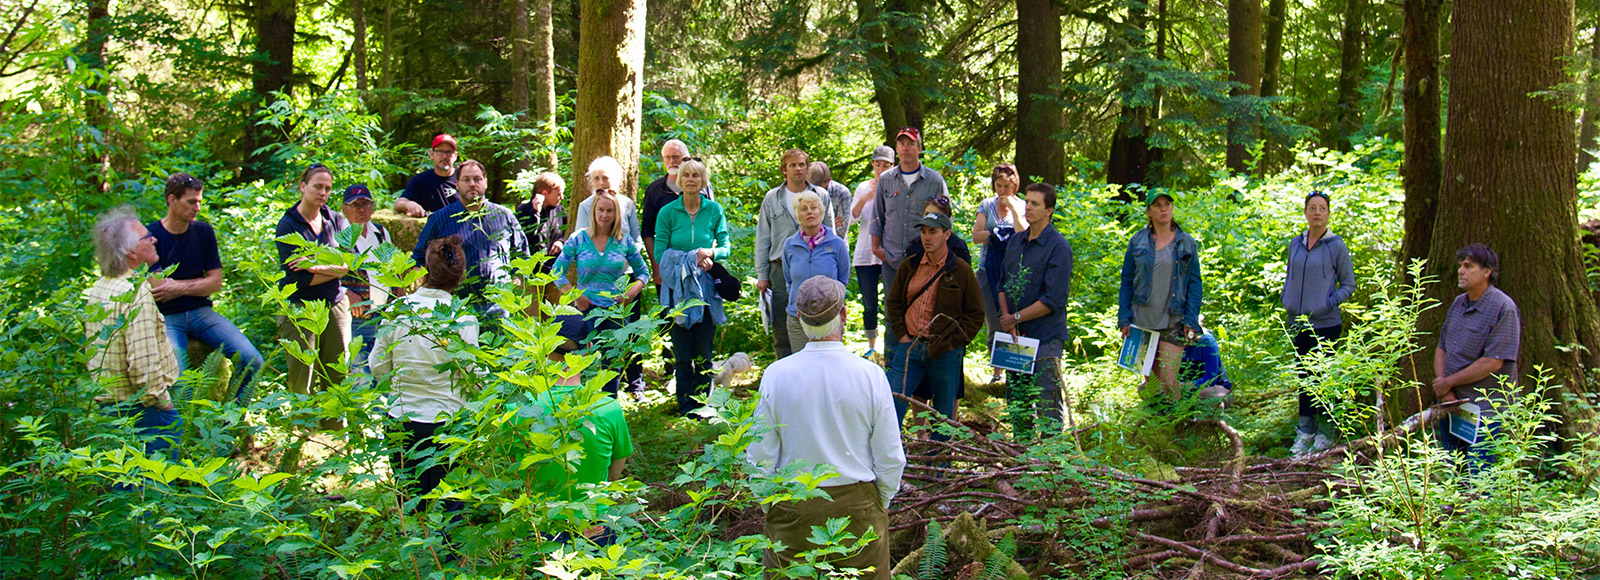 large group of men and women standing in a deep green forest talking